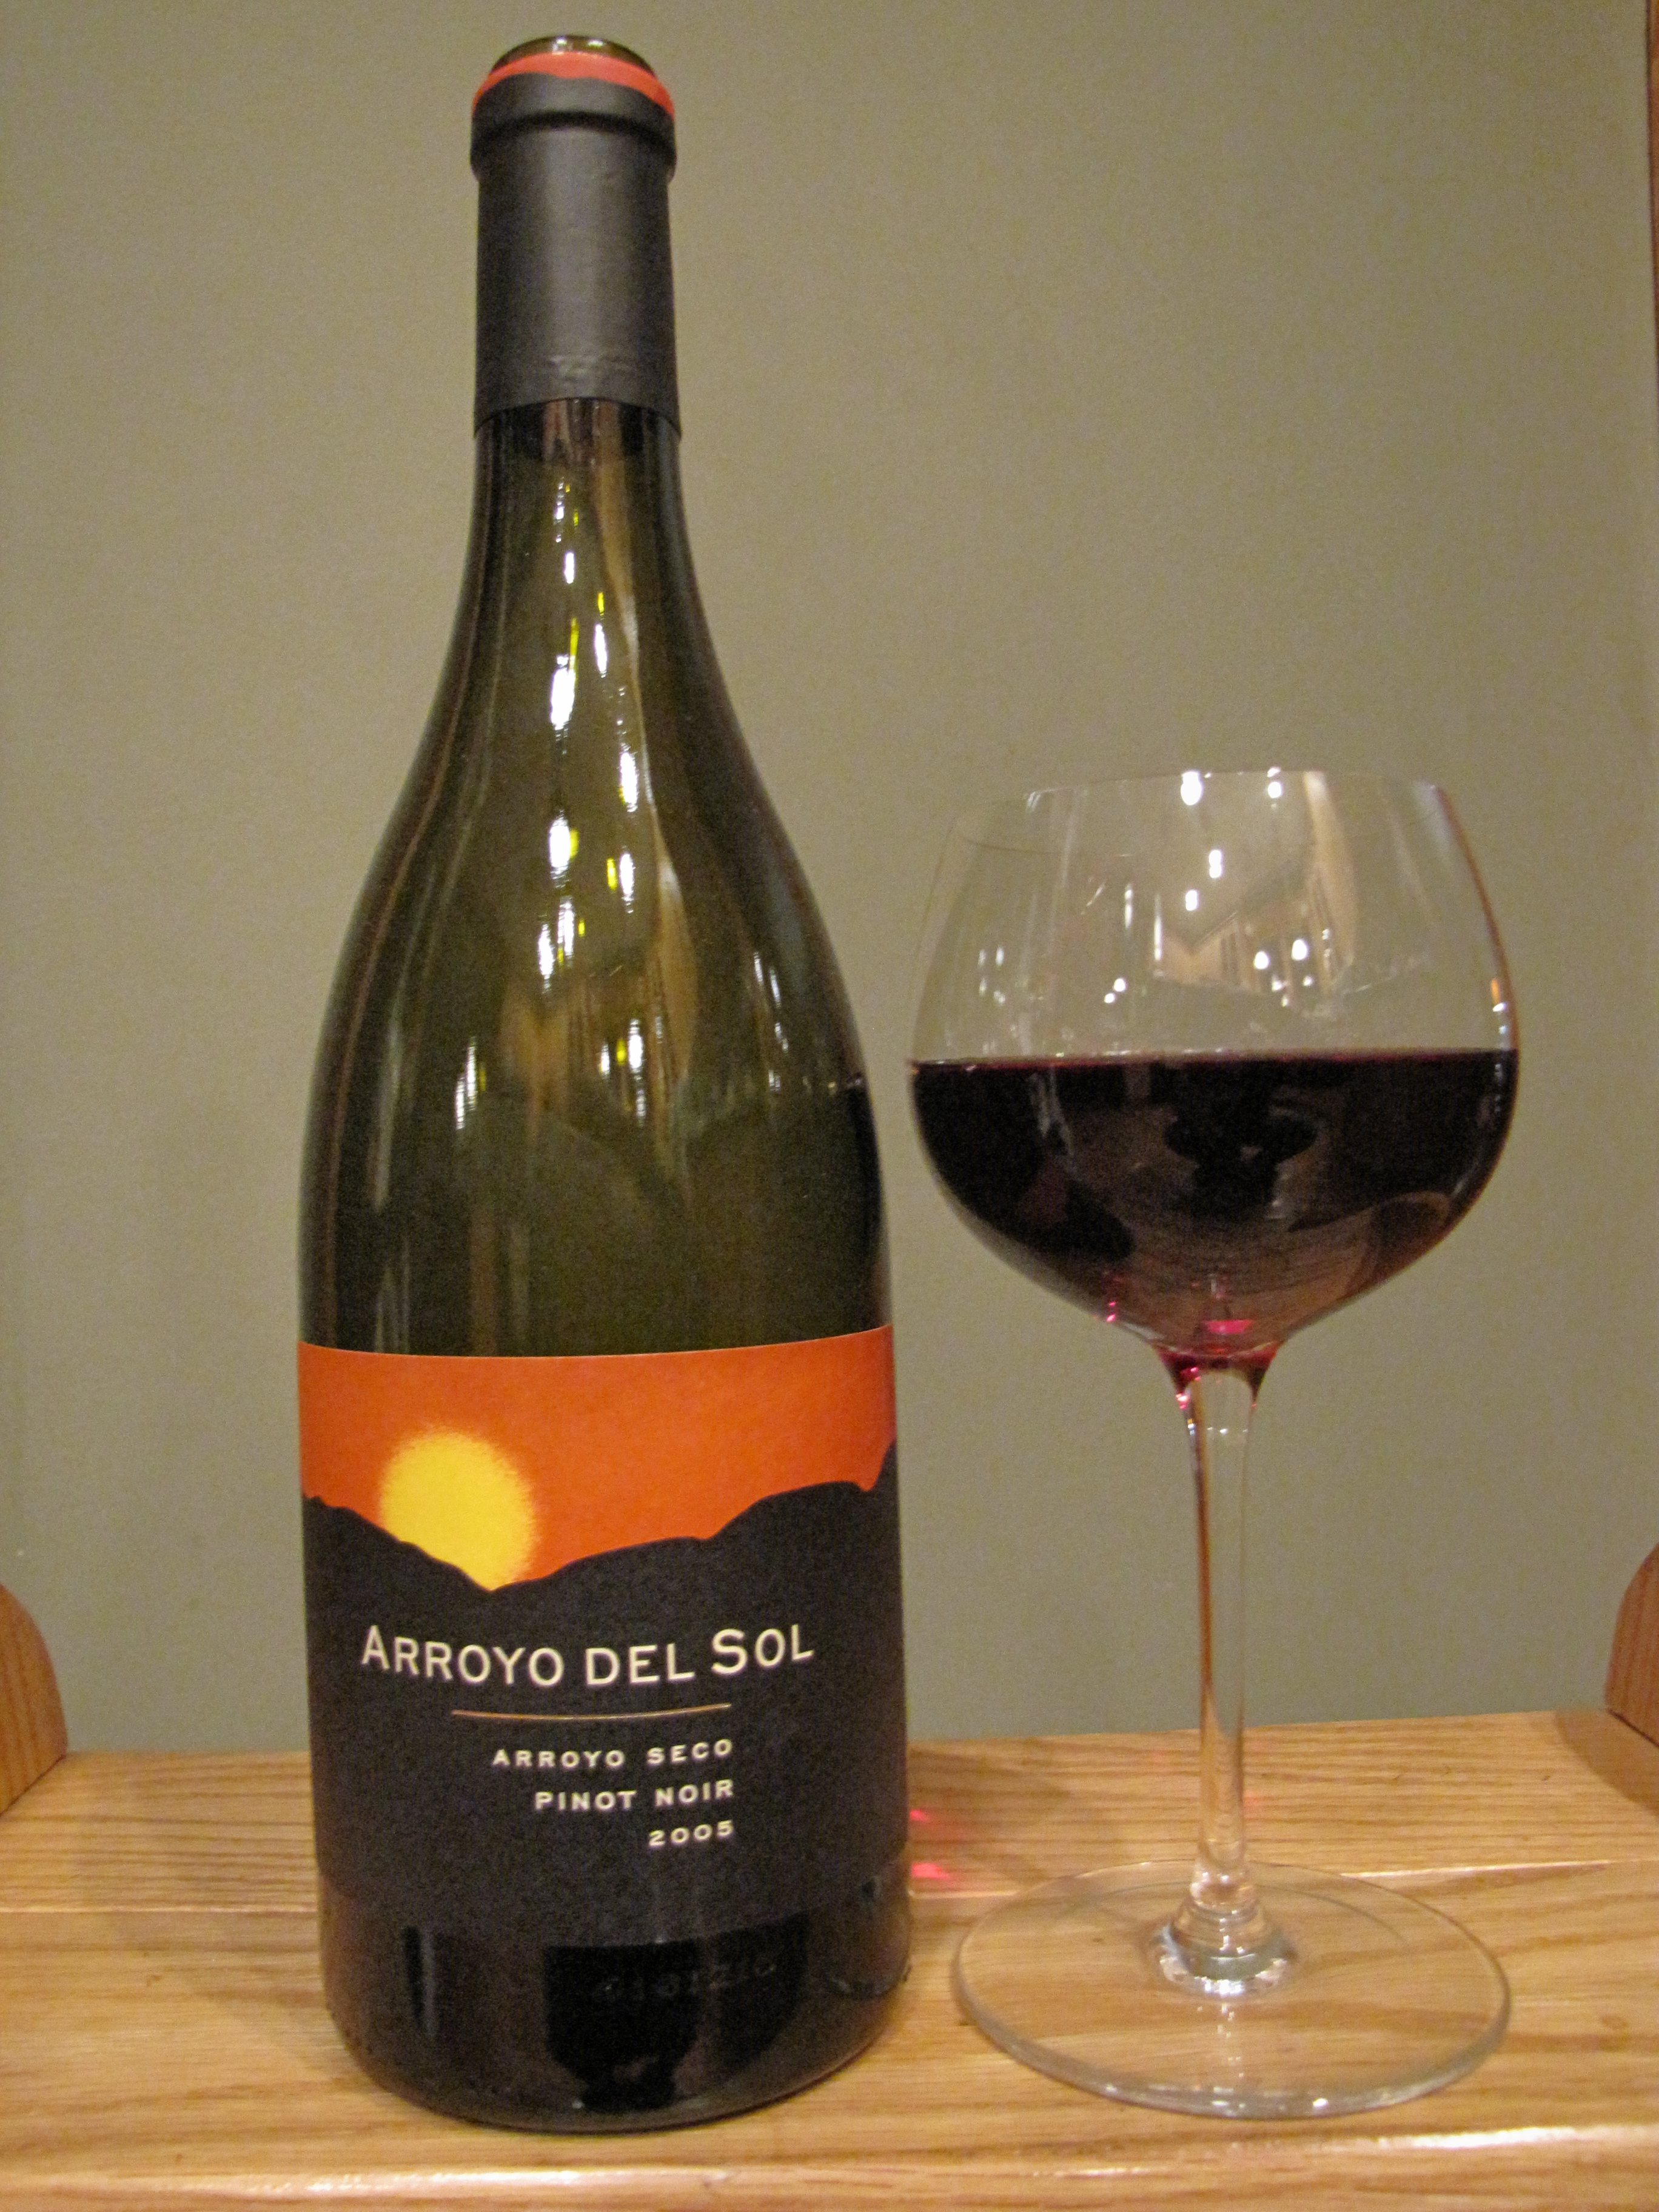 Arroyo del Sol Vineyards Pinot Noir Arroyo Seco (2005)